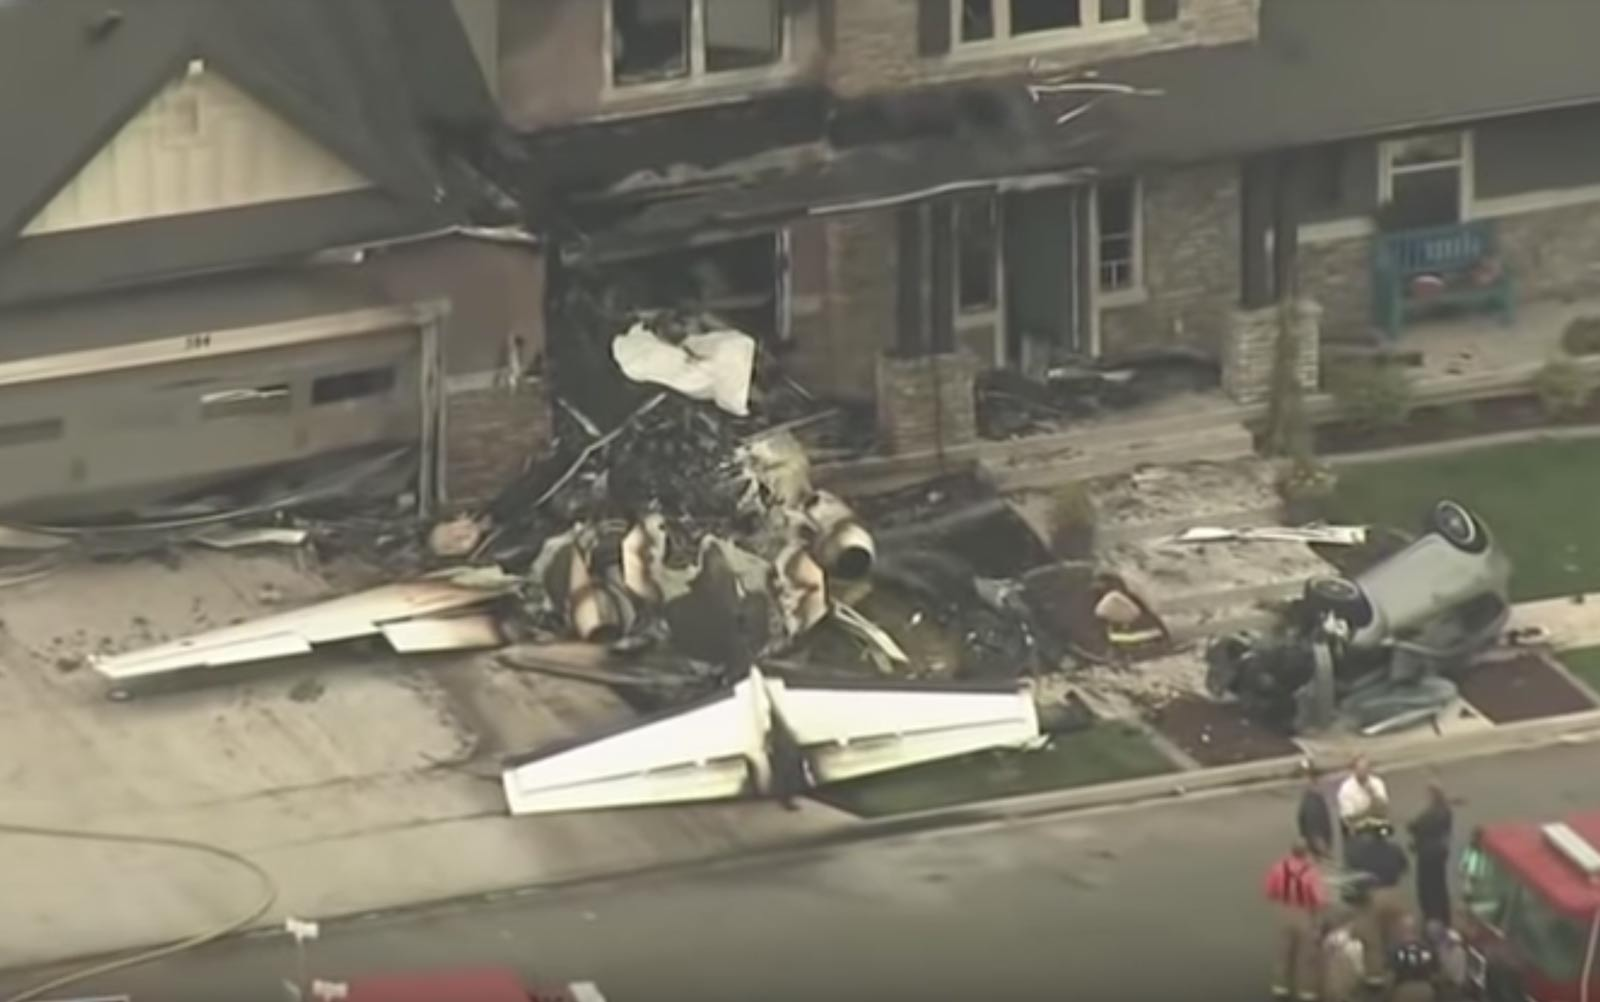 Man Steals Plane Crashes It Into His Own Home Travel Leisure